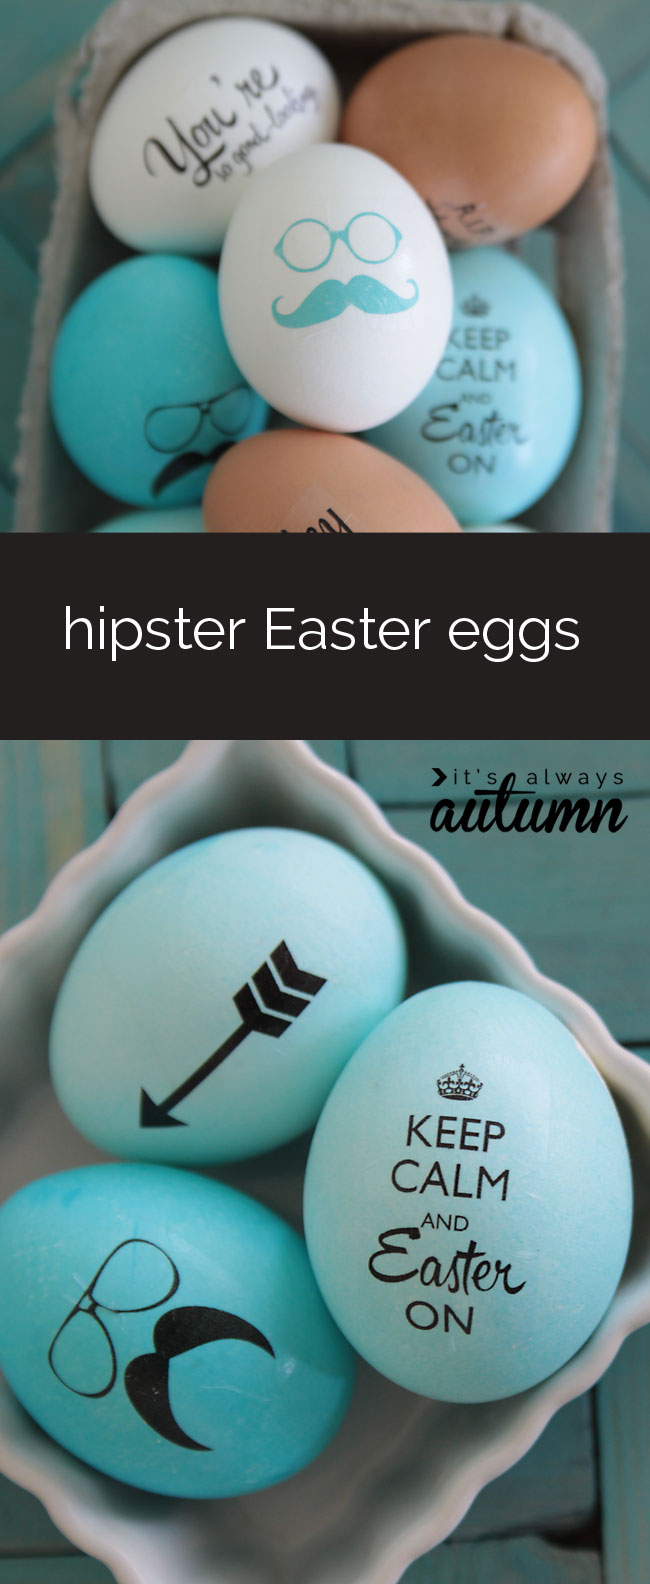 decorated blue and brown hipster Easter eggs